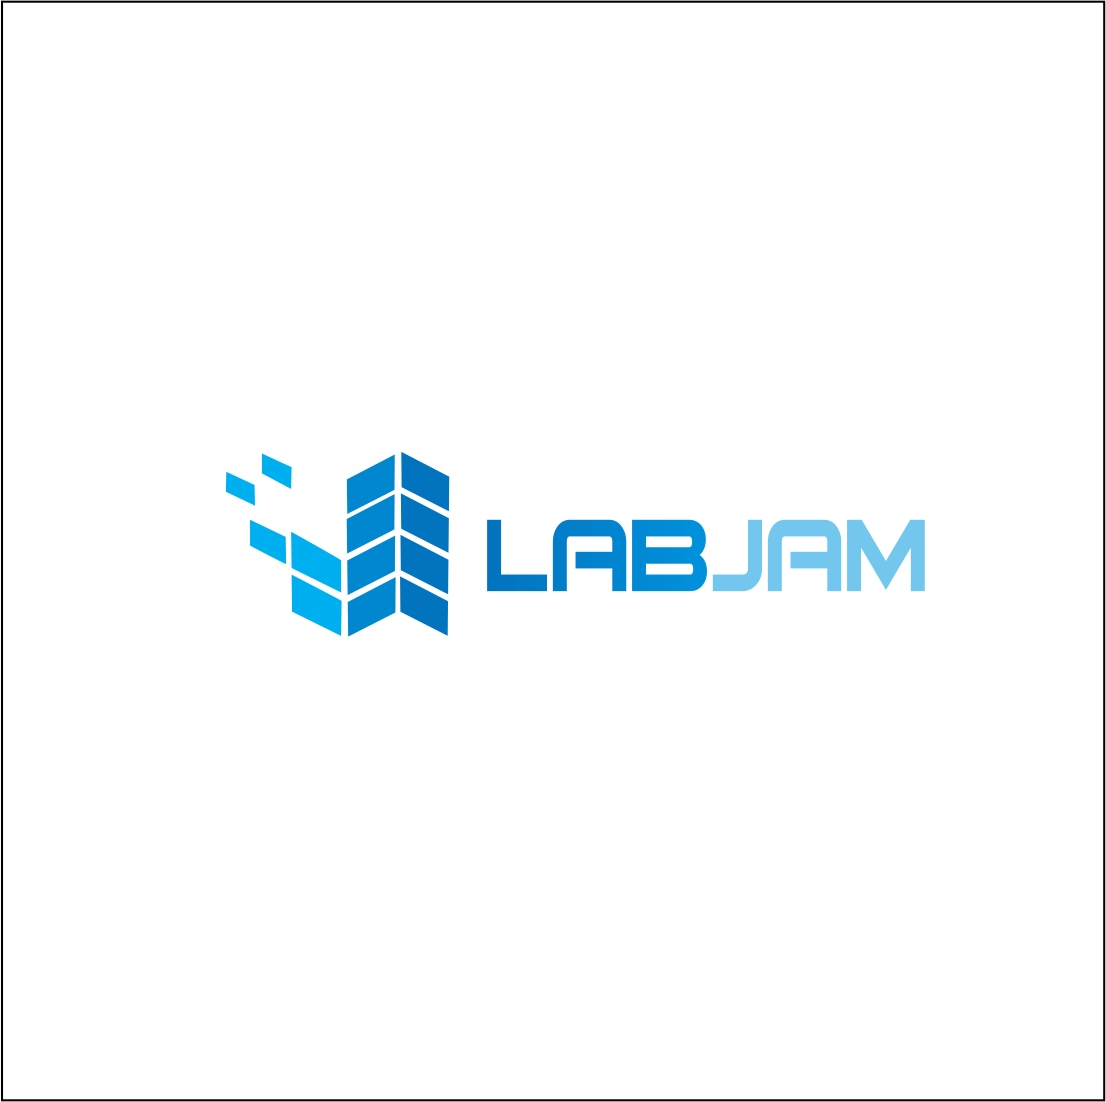 Logo Design by arkvisdesigns - Entry No. 98 in the Logo Design Contest Labjam.